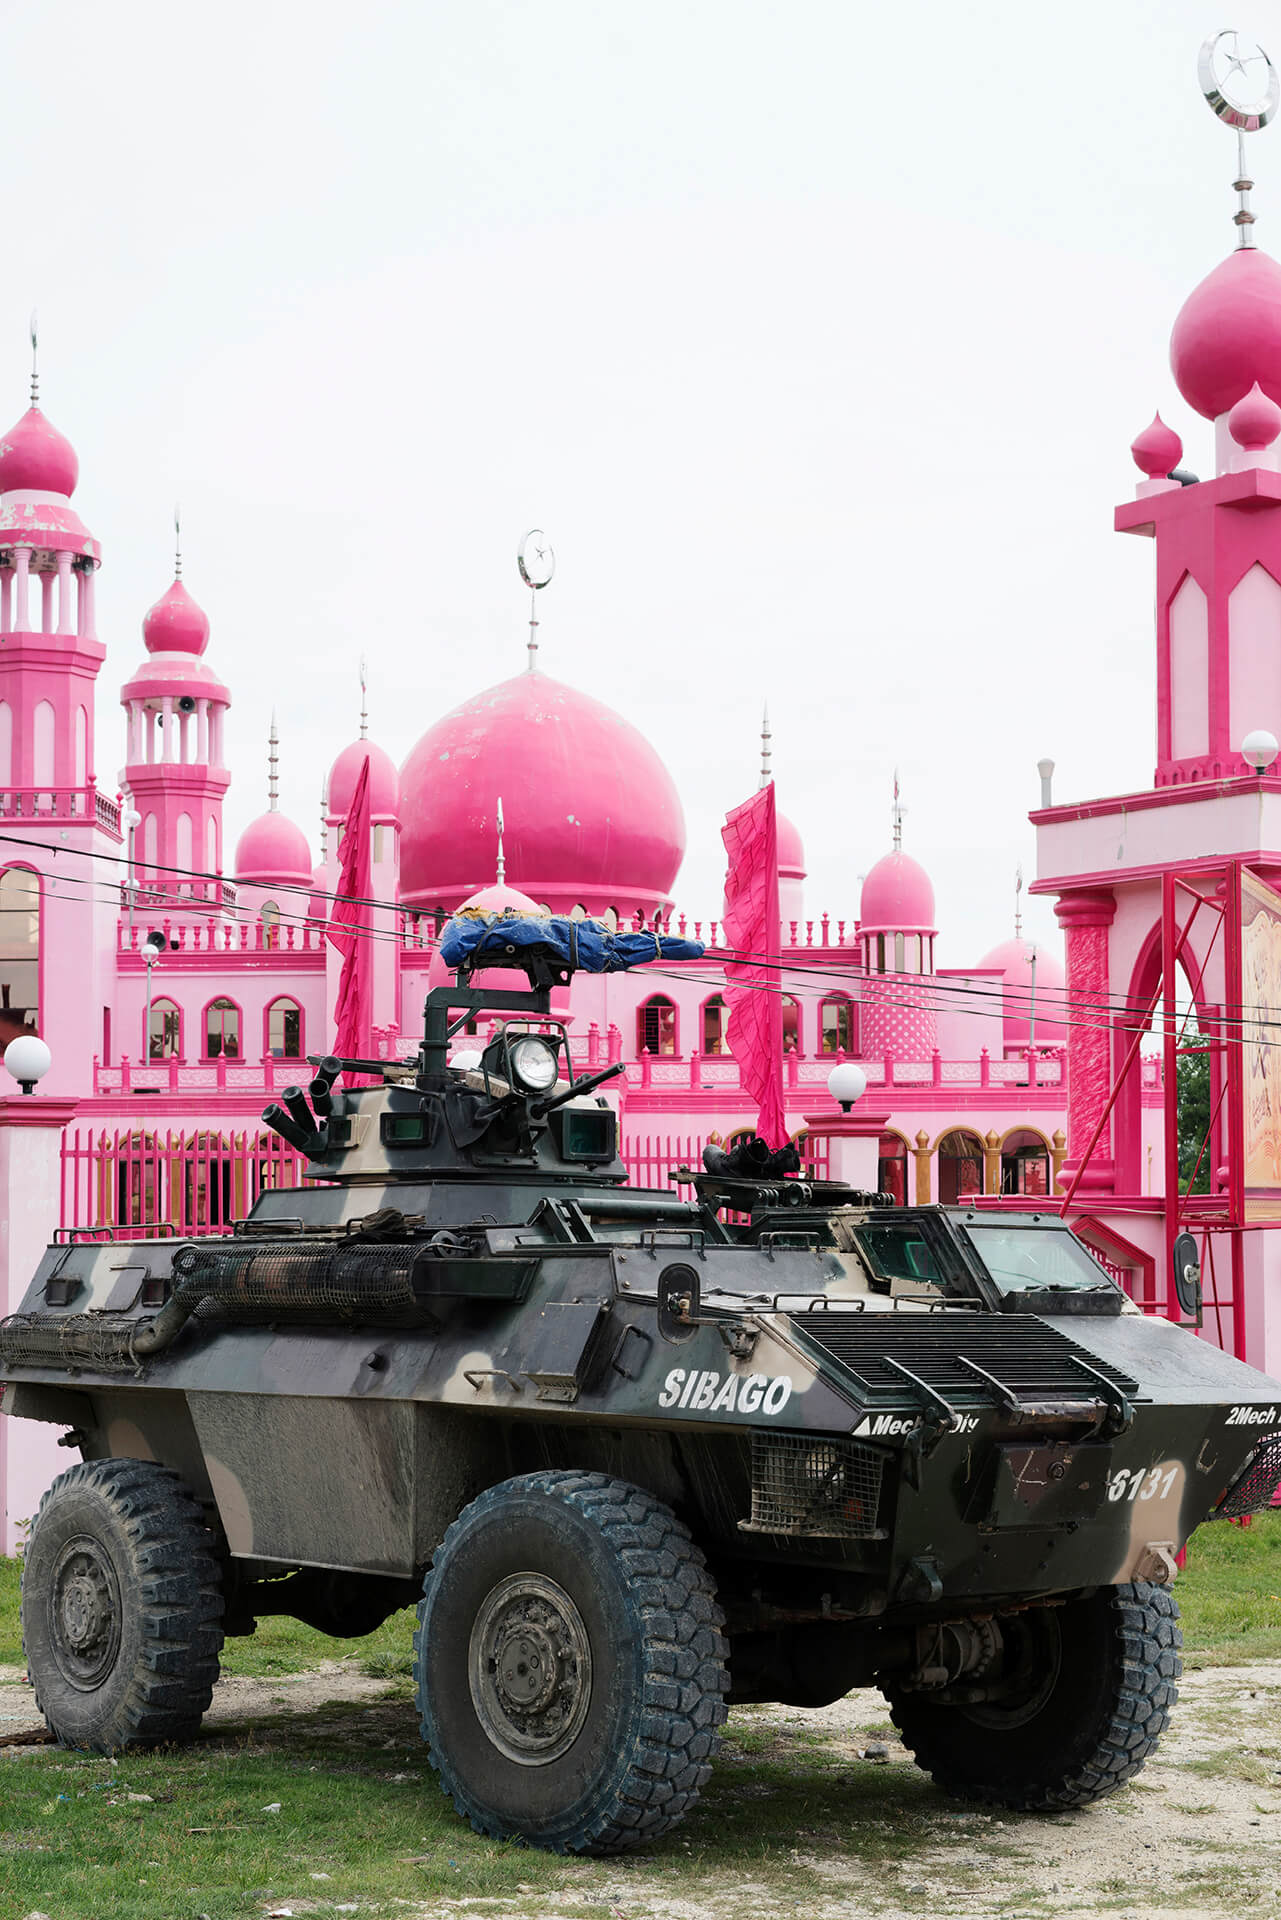 A military tanker is stationed in front of the famous pink masjid.